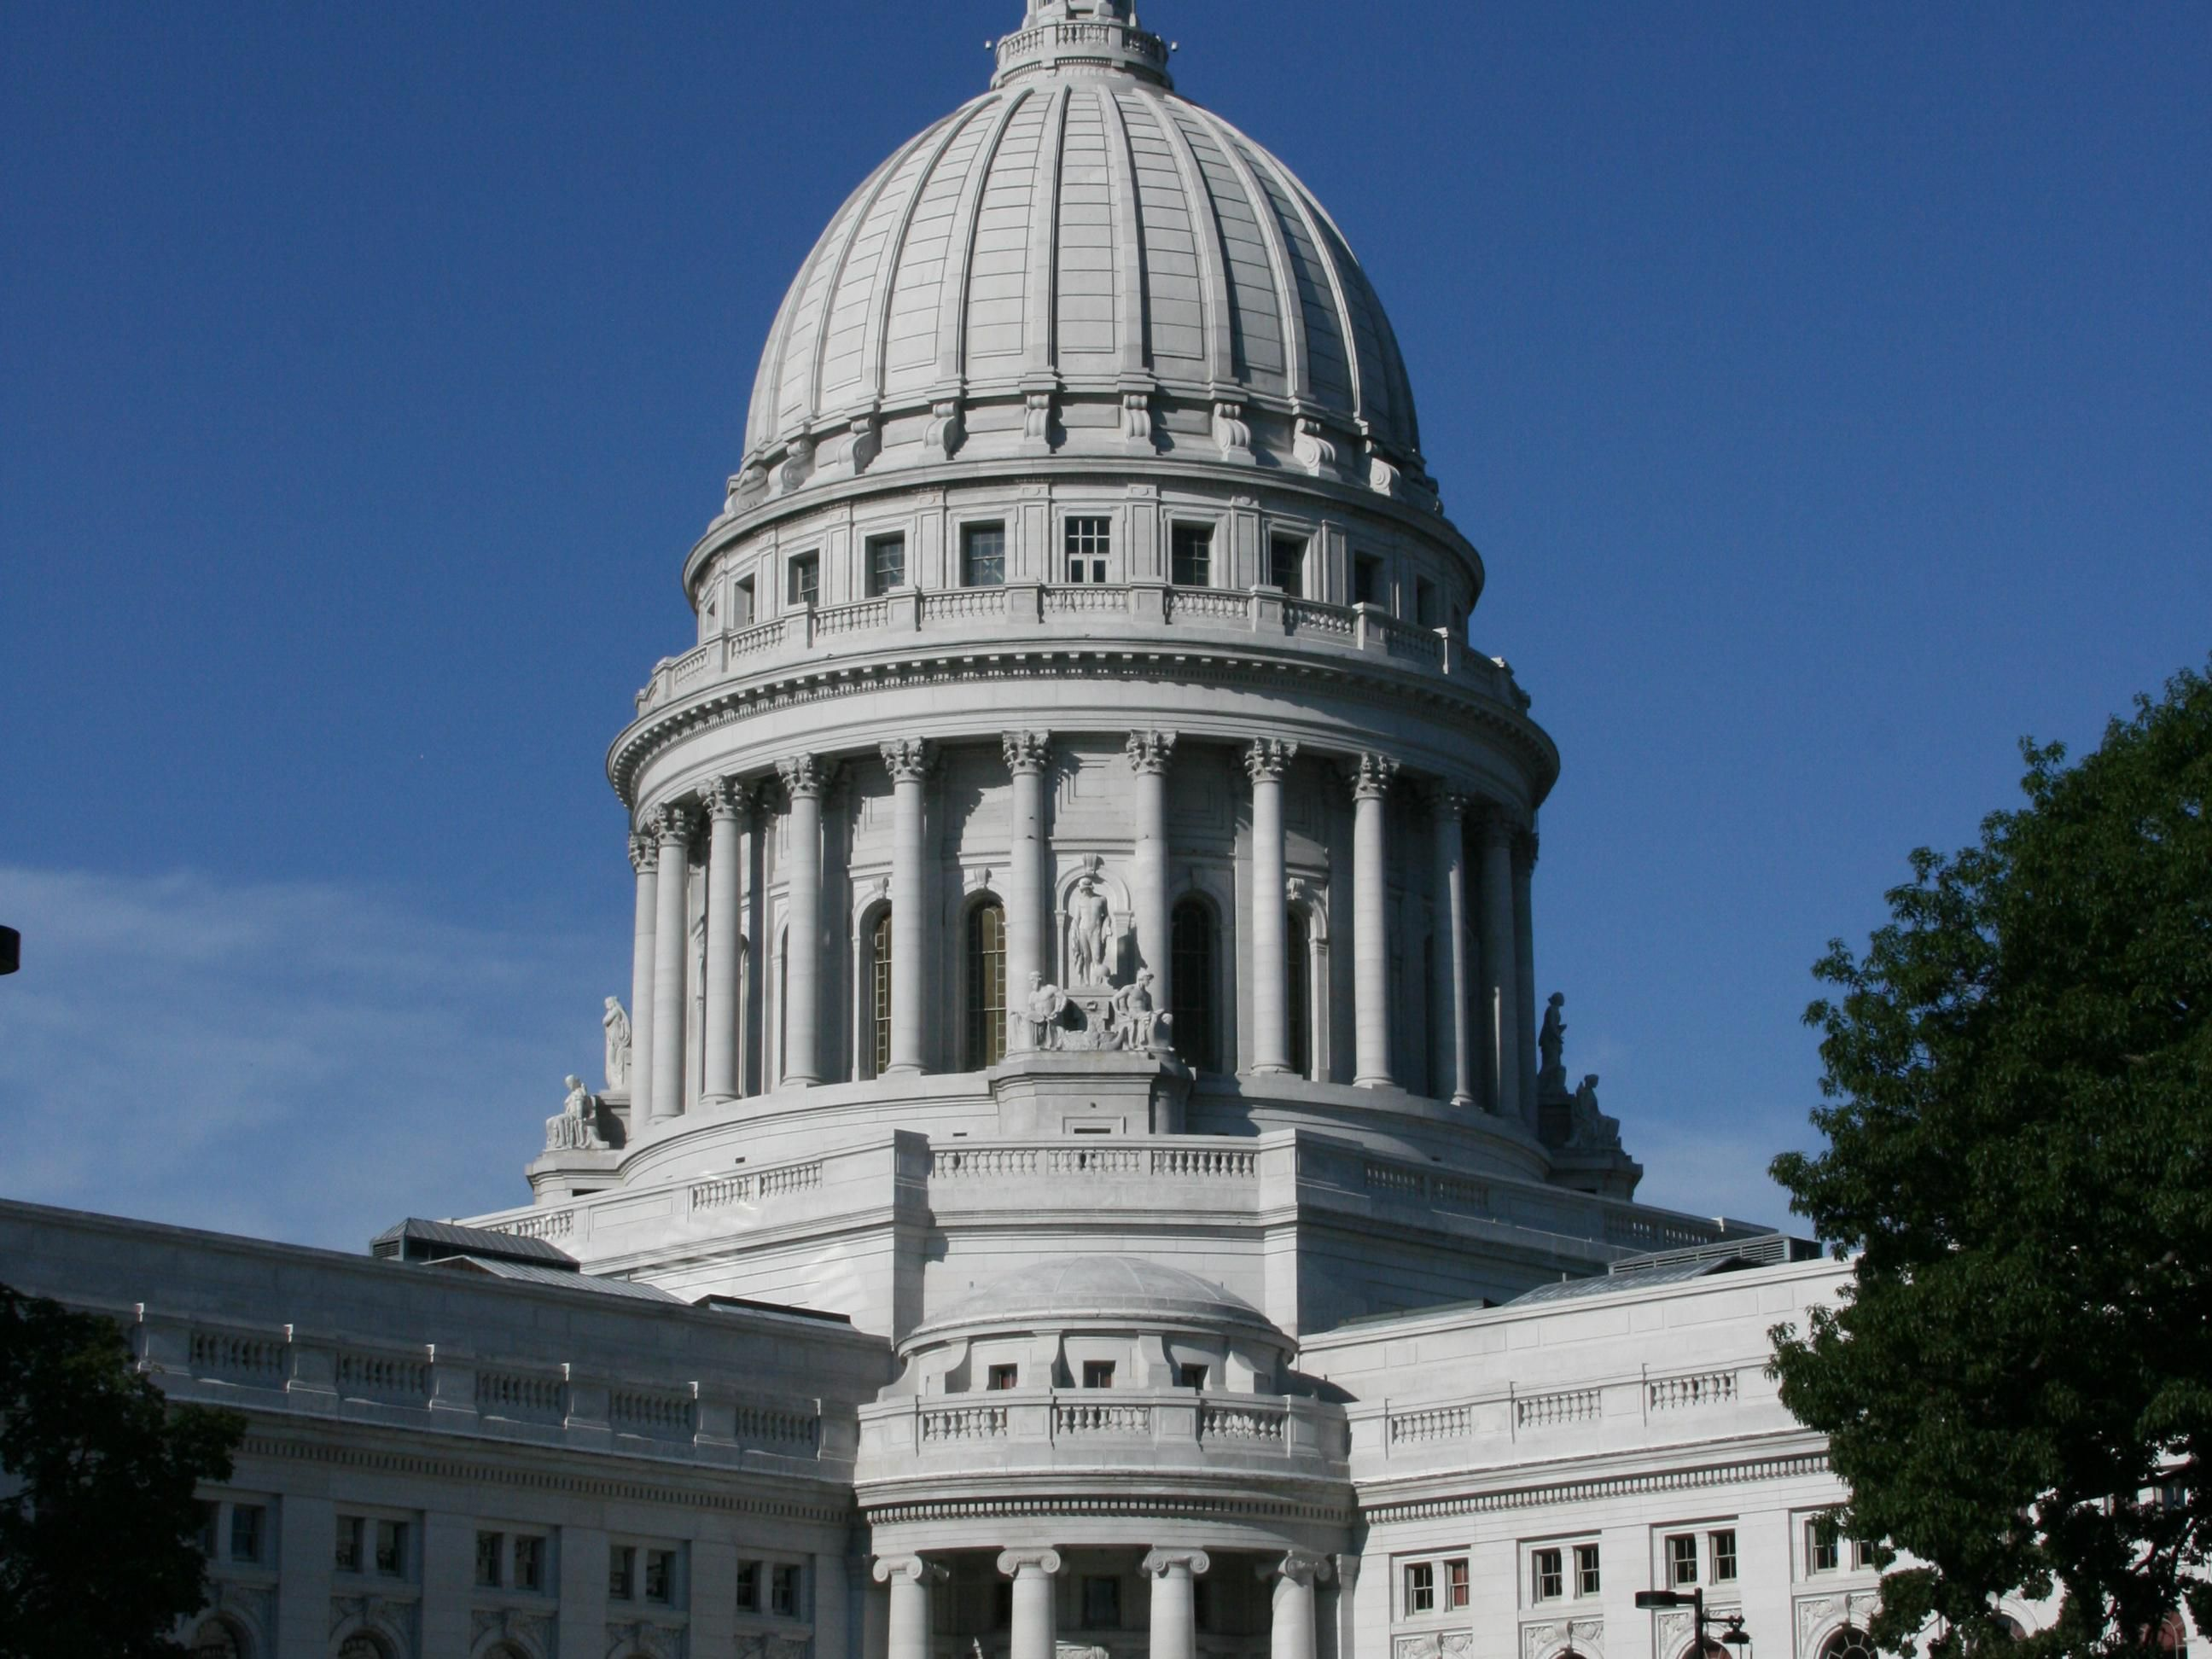 Tour the State Capital of Wisconsin